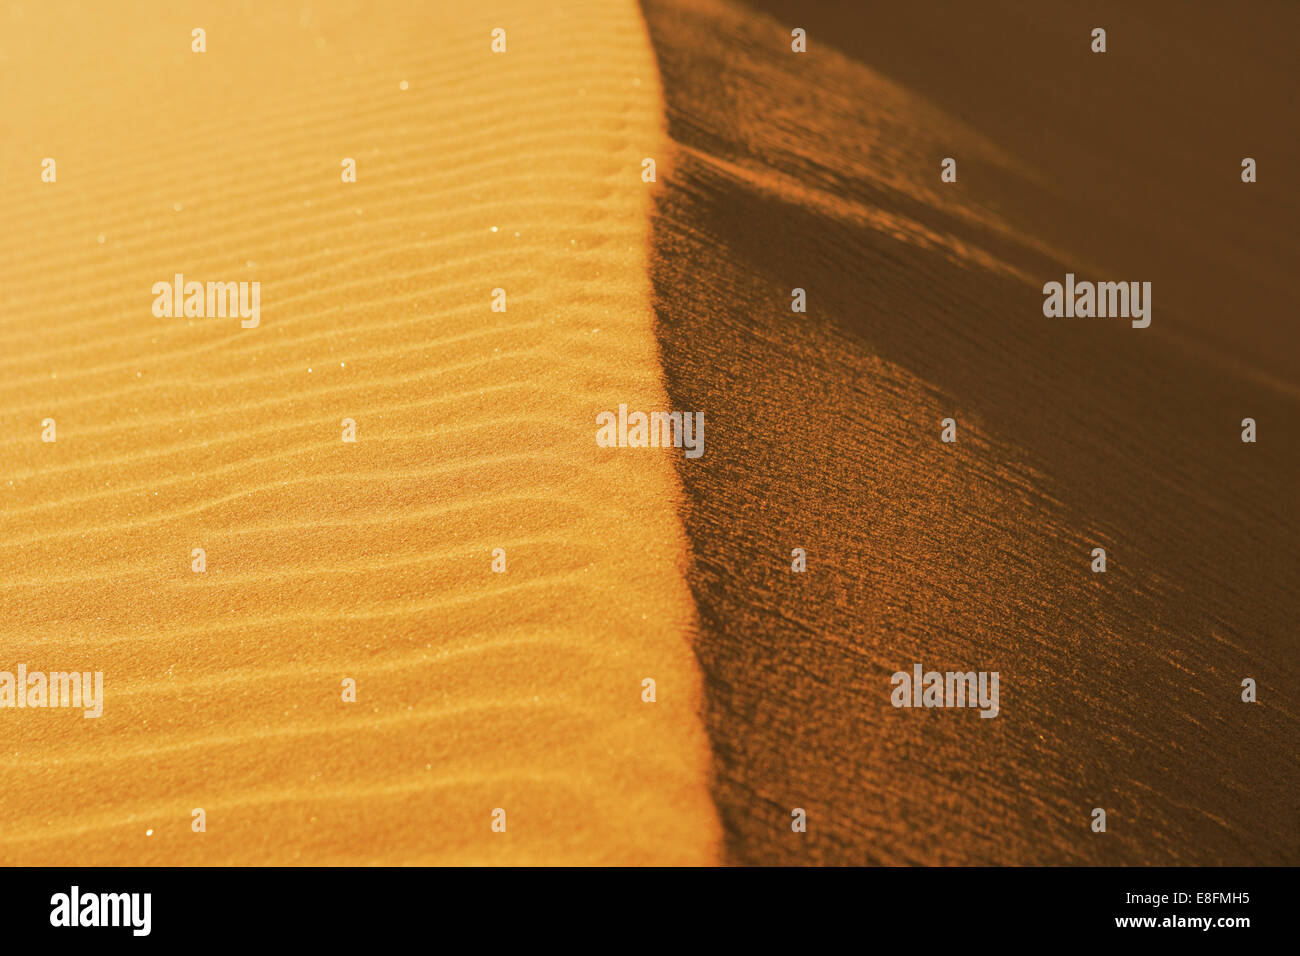 Ridge of sand dune, Namibia - Stock Image